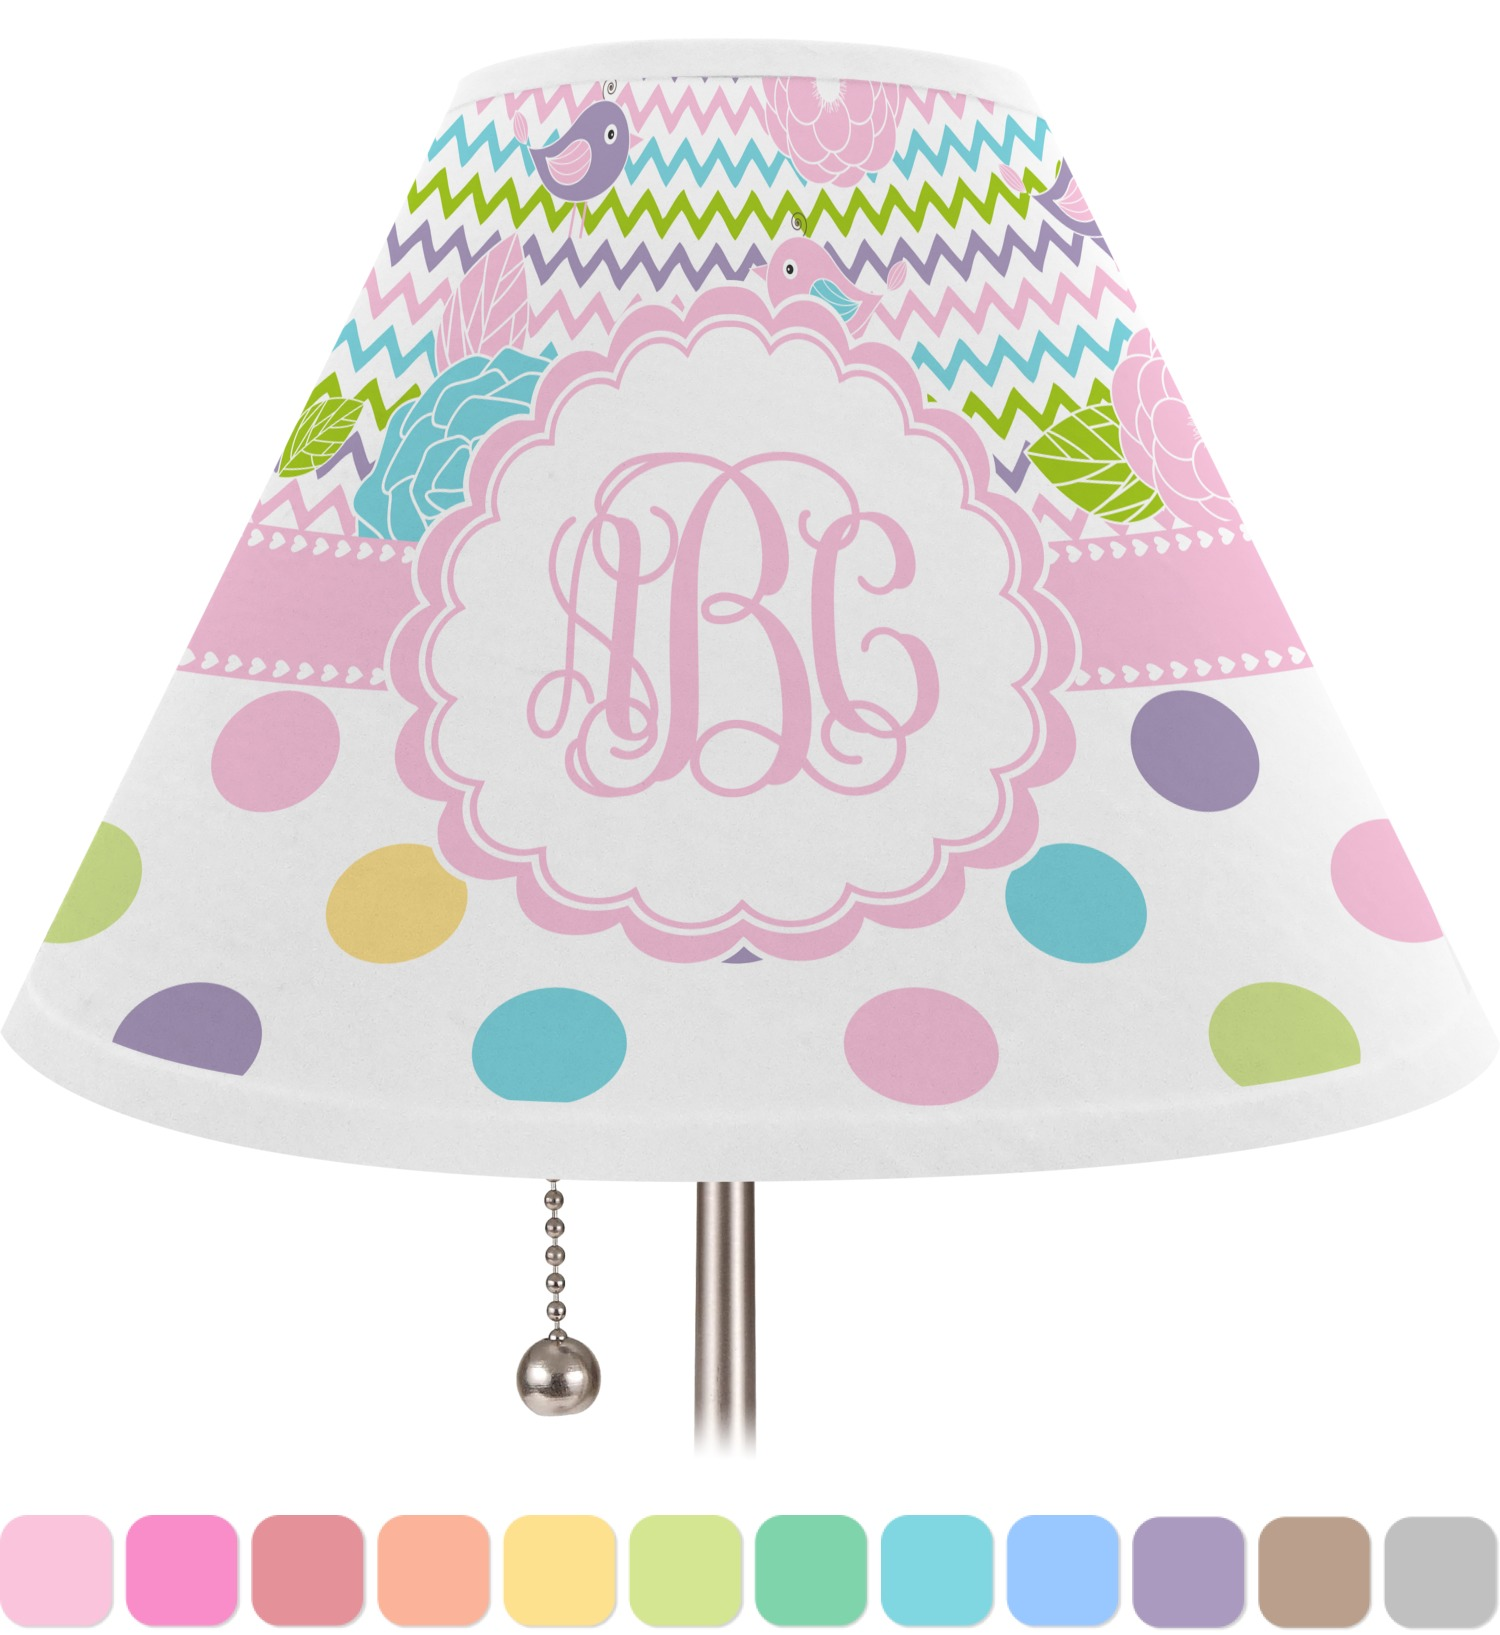 Girly Lamps For Bedroom: Medium (Personalized)